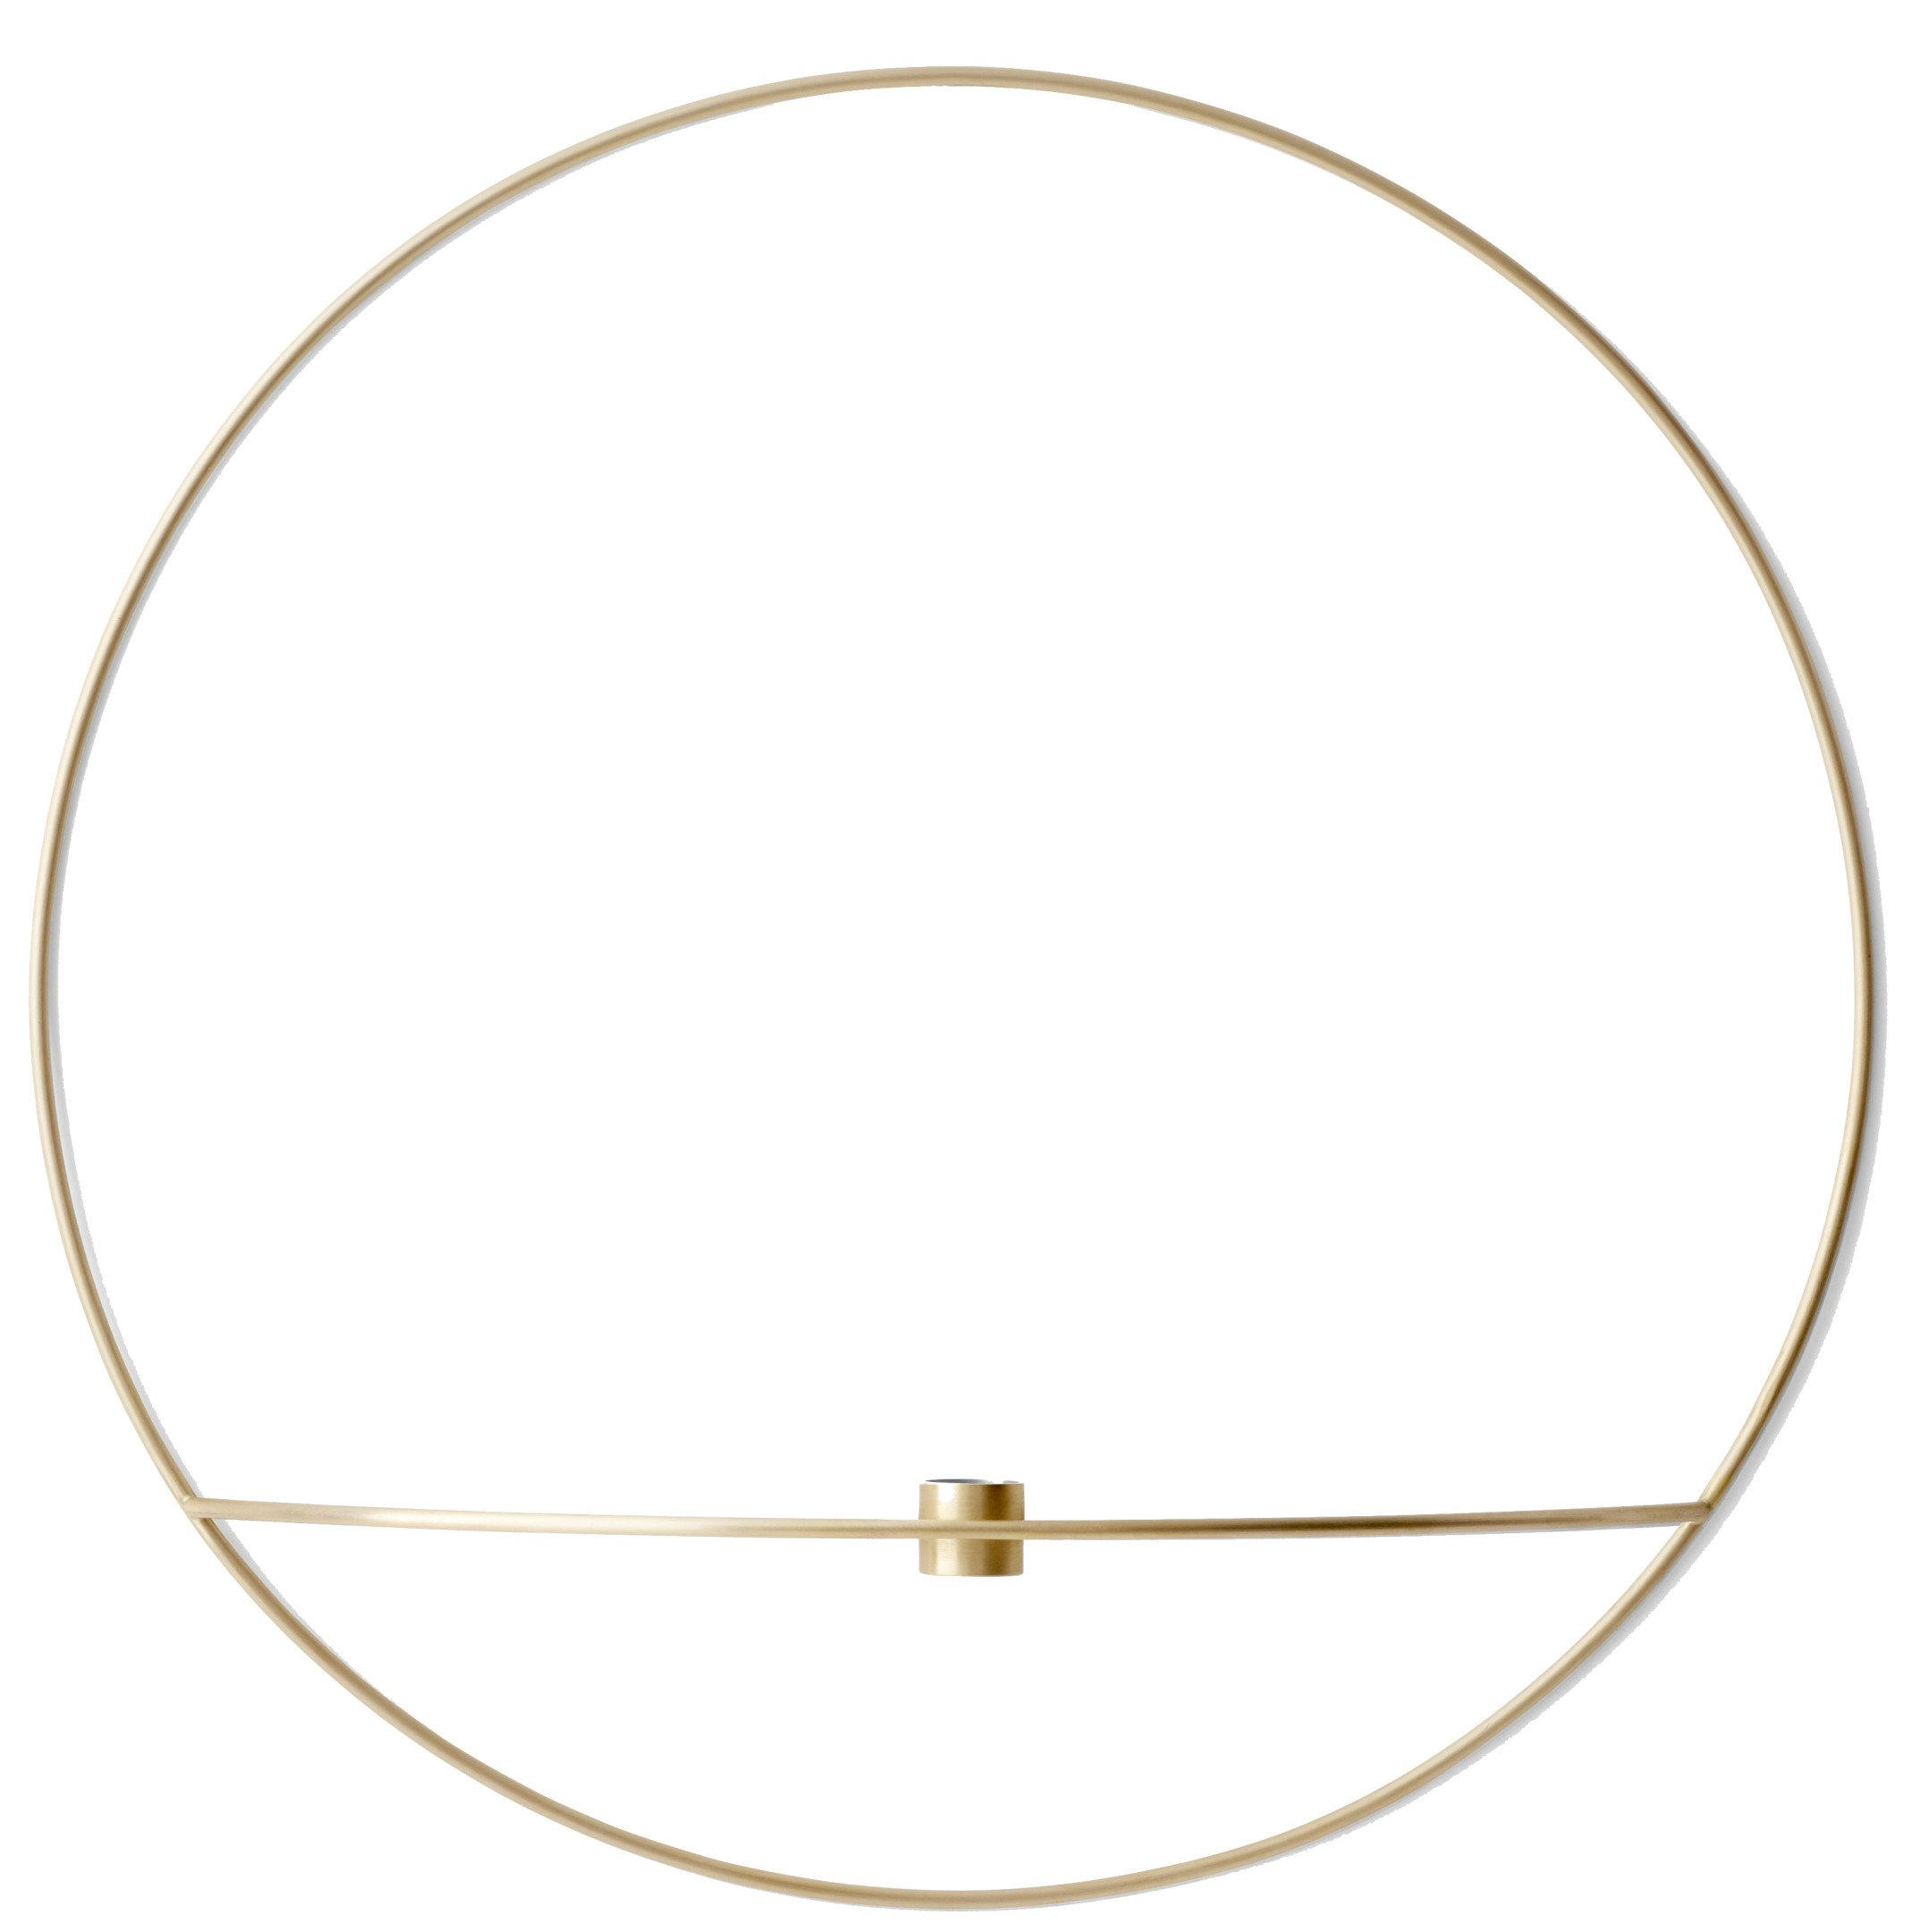 POV Circle Tealight Candleholder Brass Large, by Note Design Studio for Menu